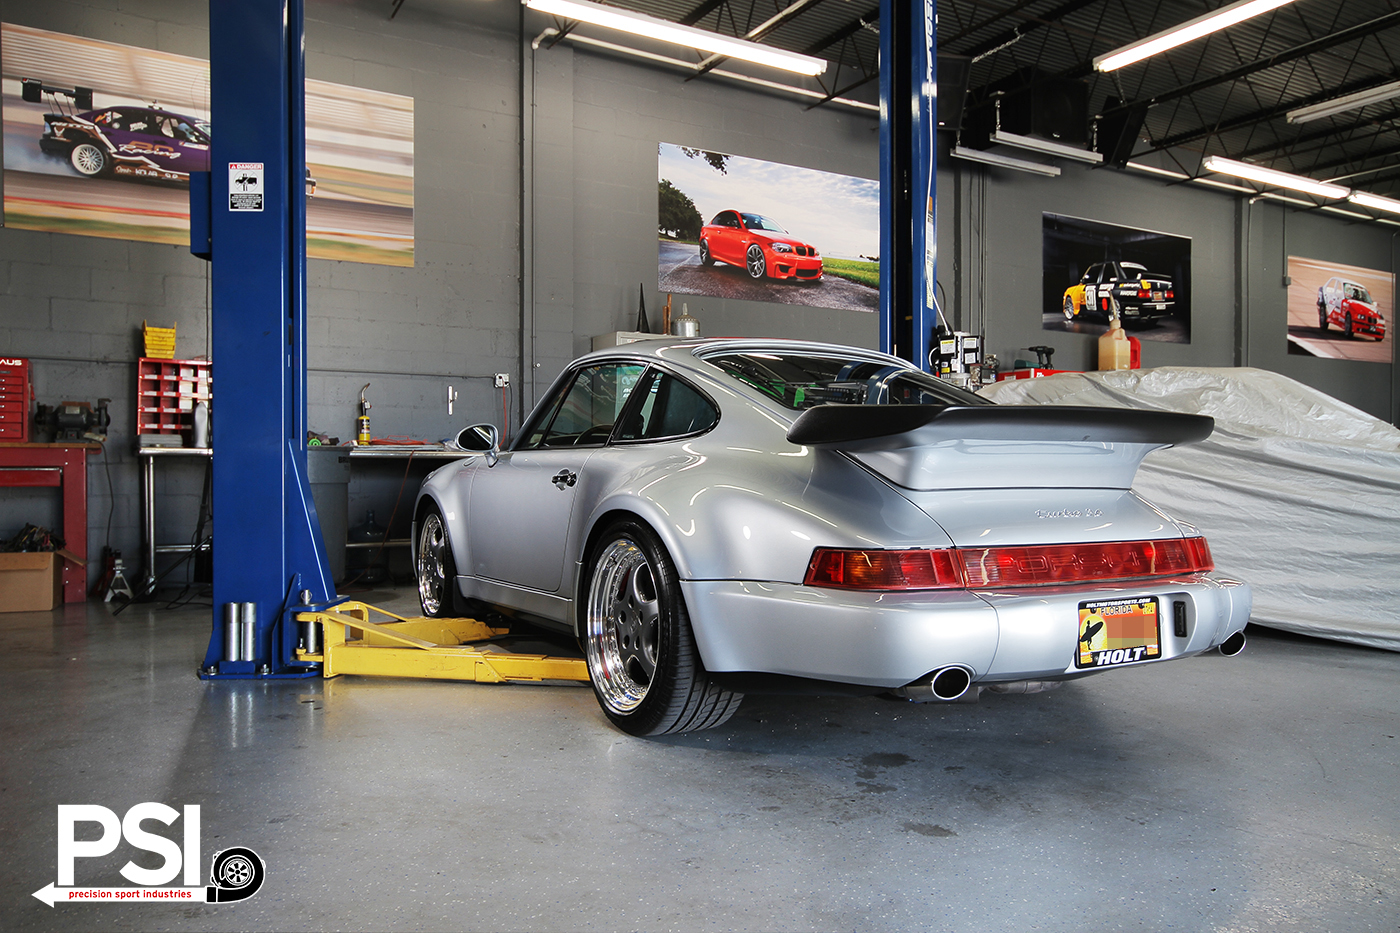 Porsche Repair and Service by PSI